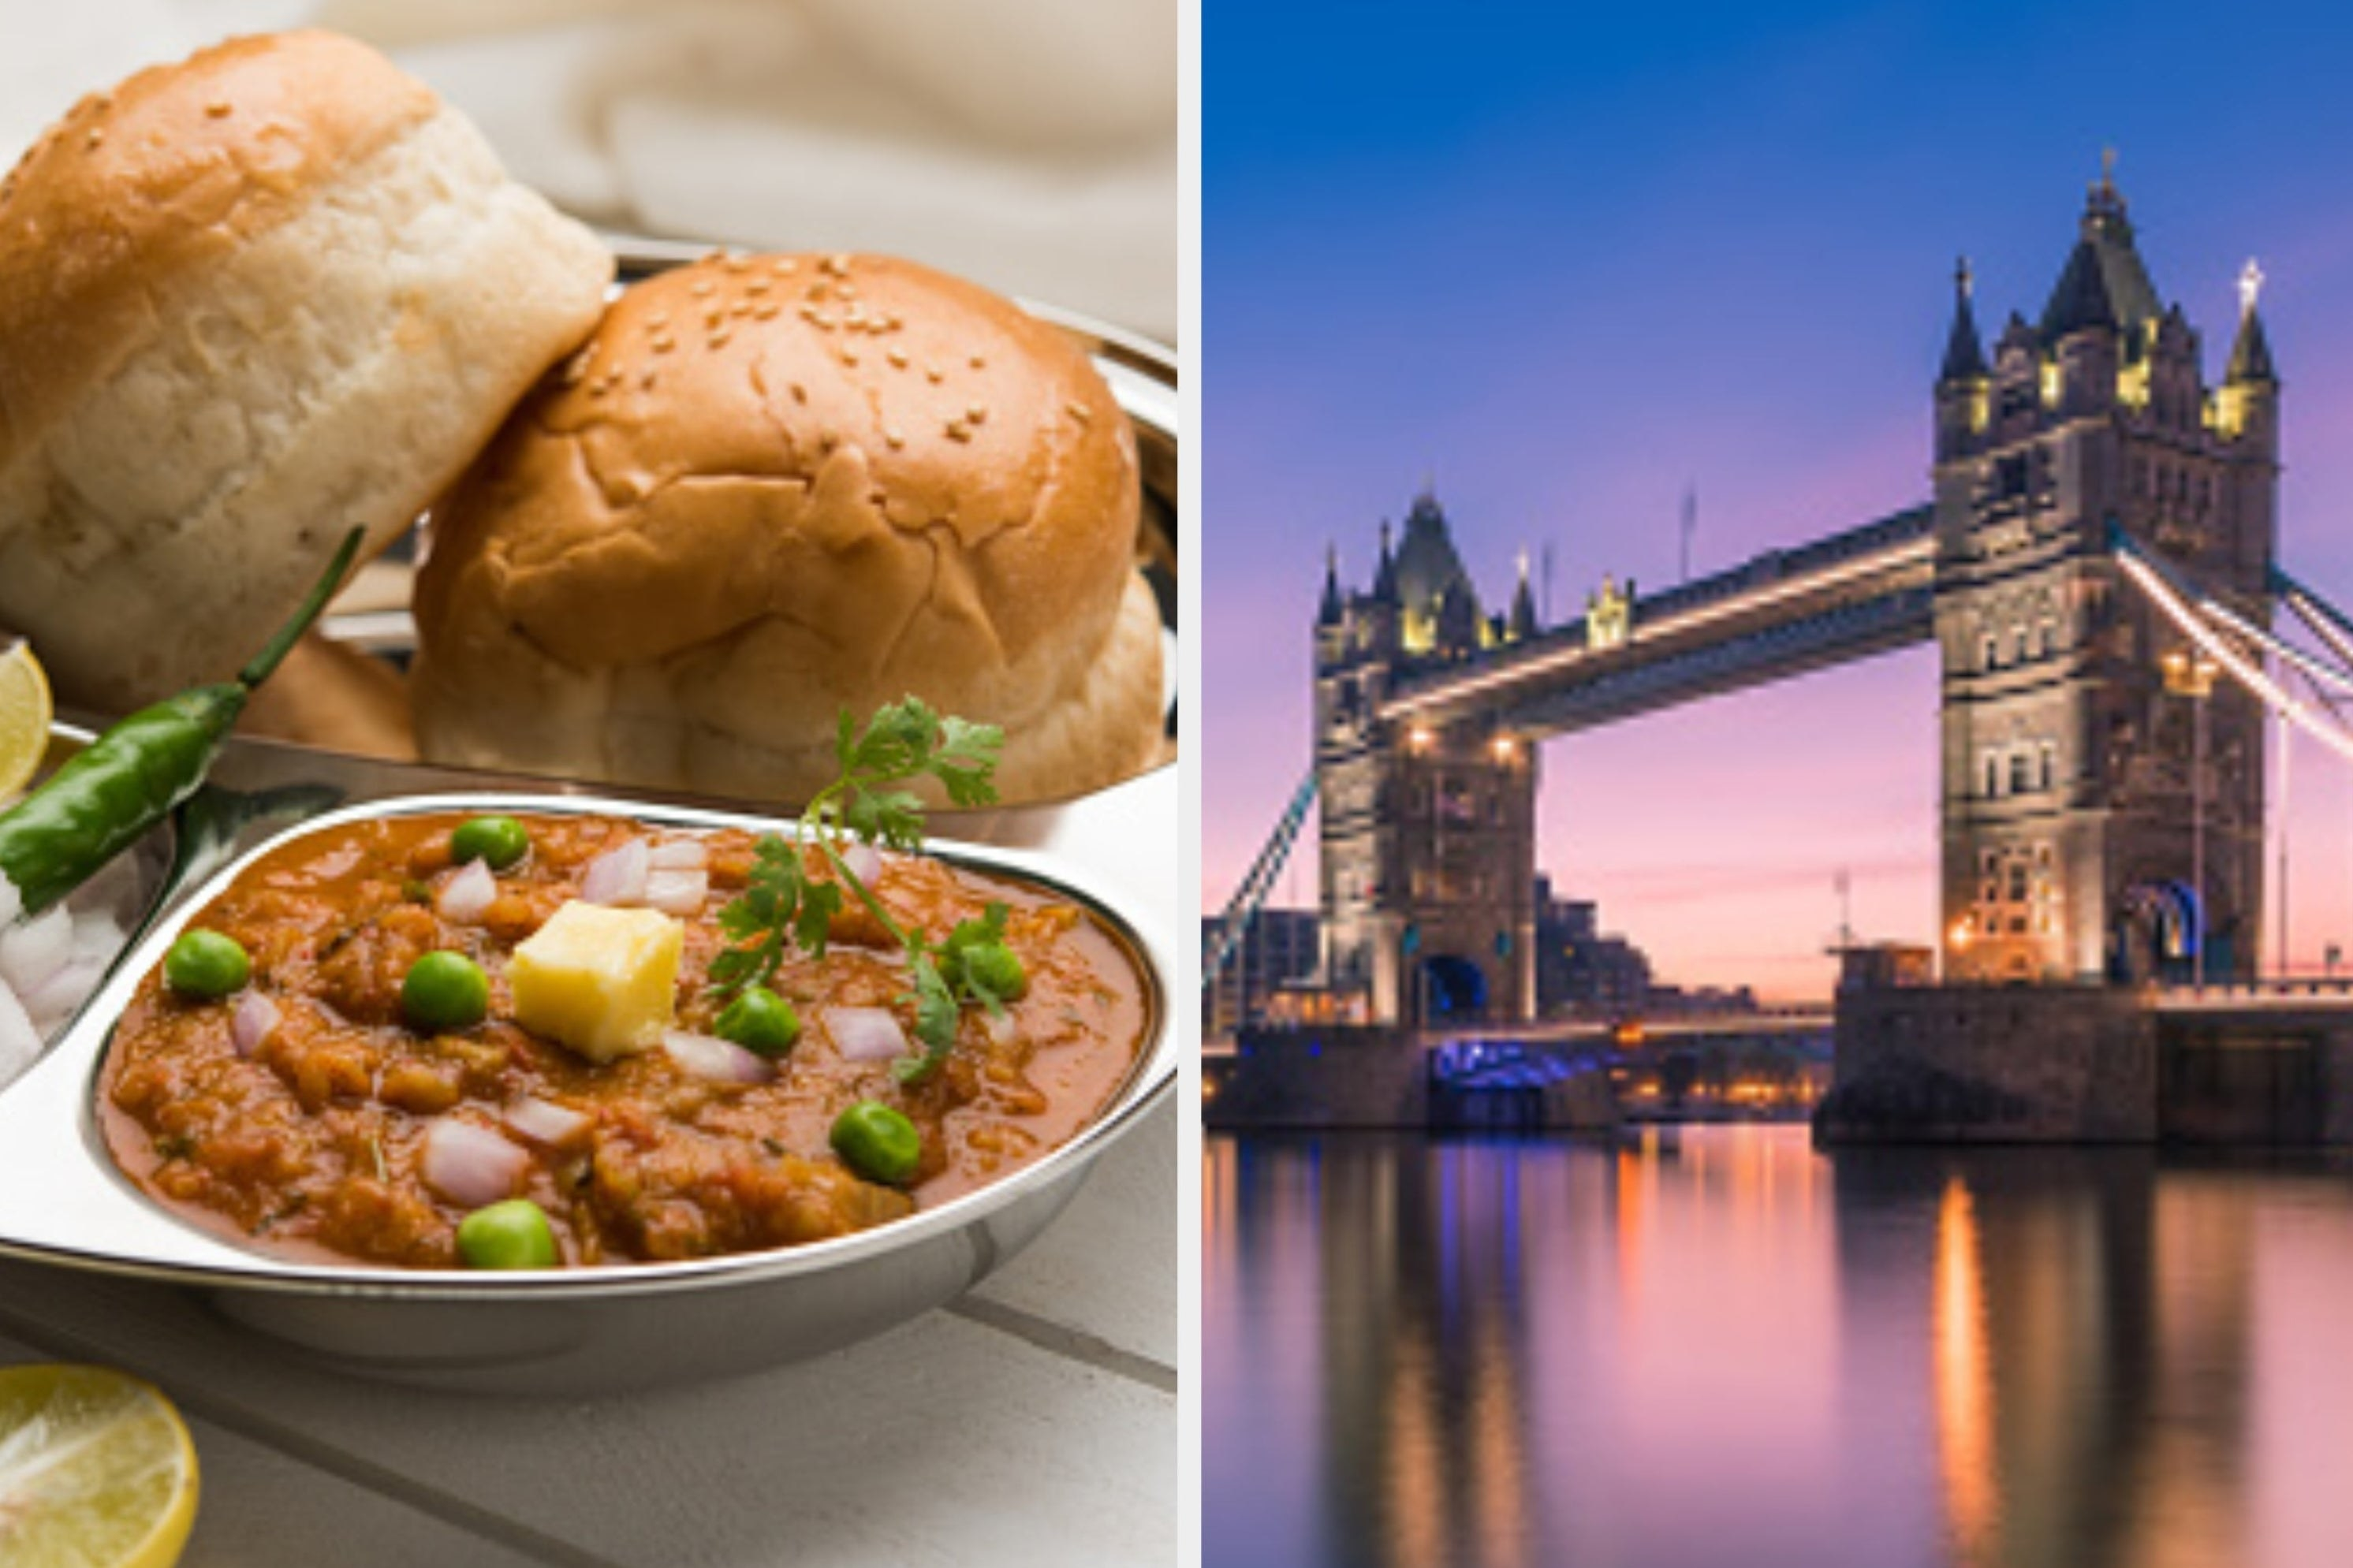 A collage of a plate of pav bhaji and the tower bridge in London